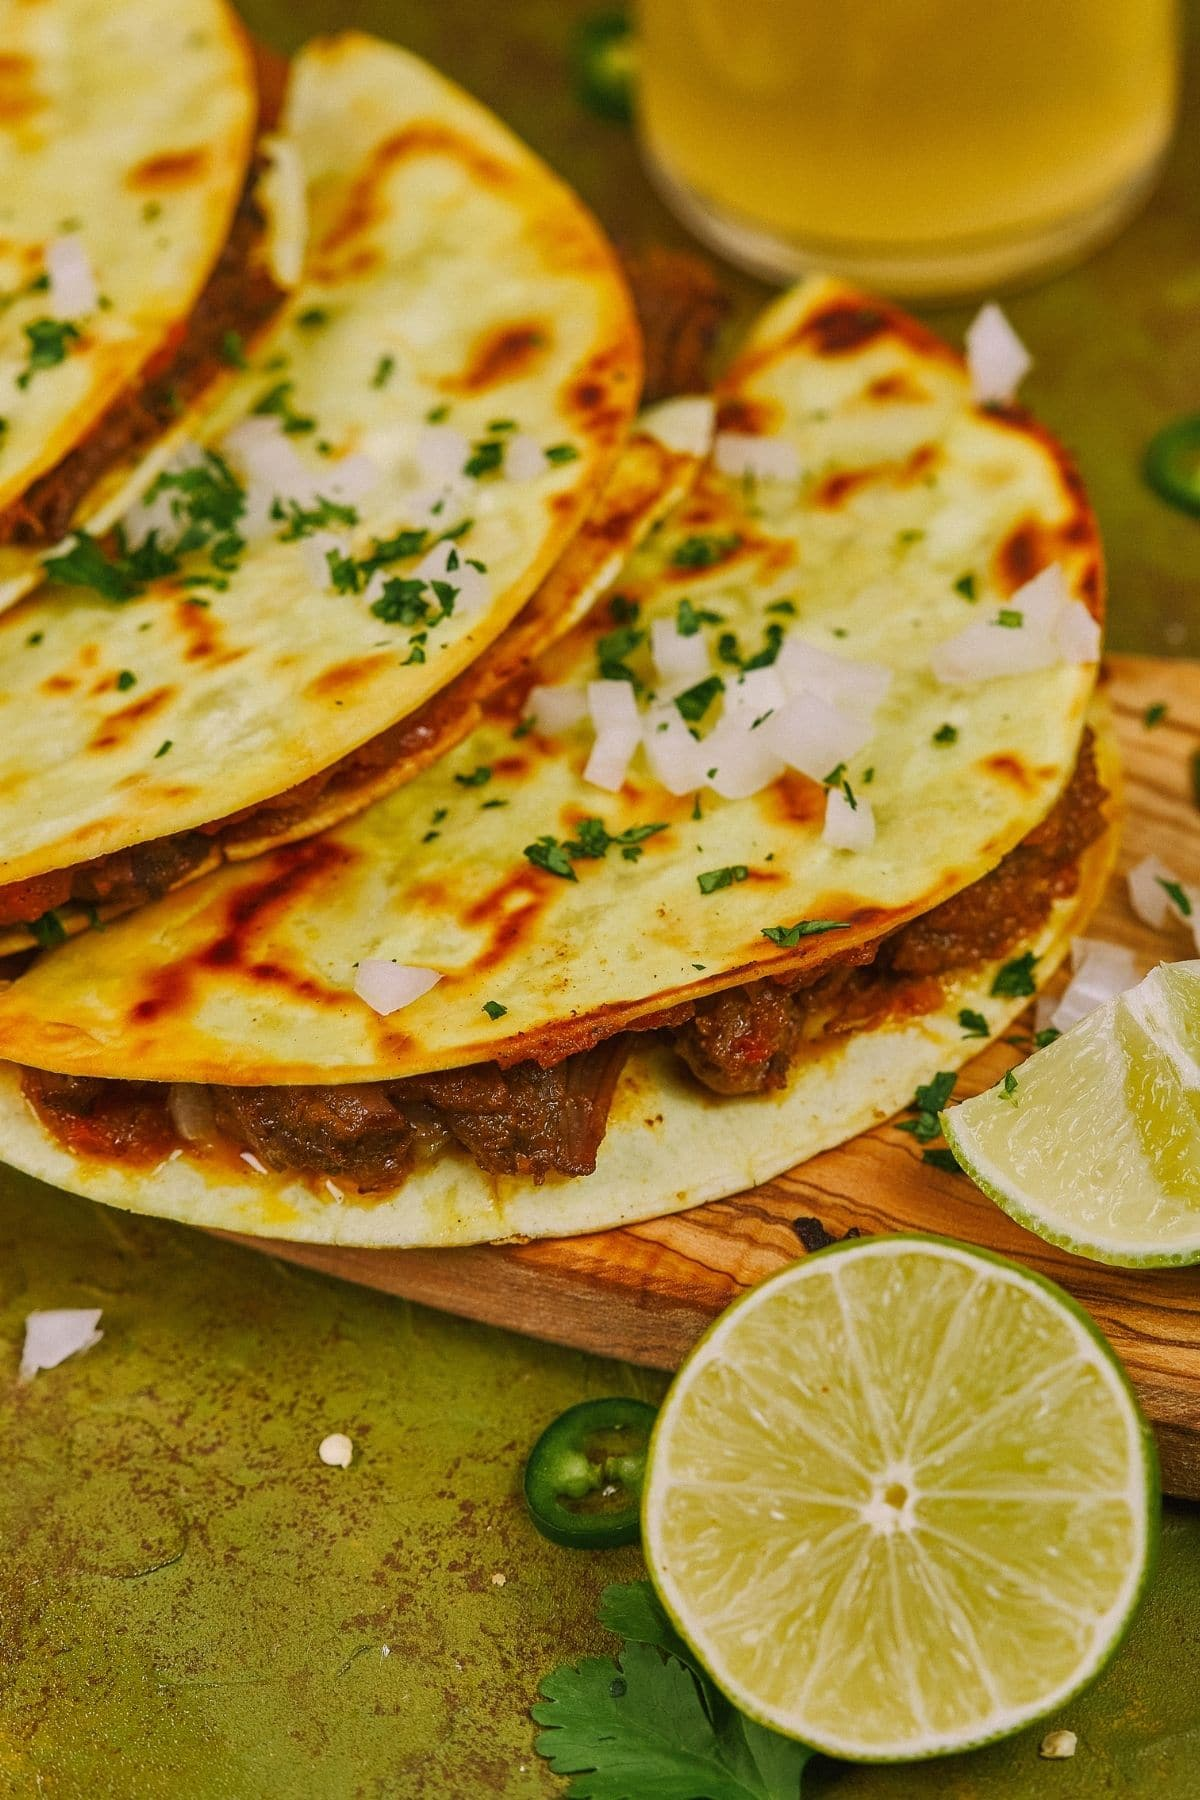 Lime wedge by stack of tacos